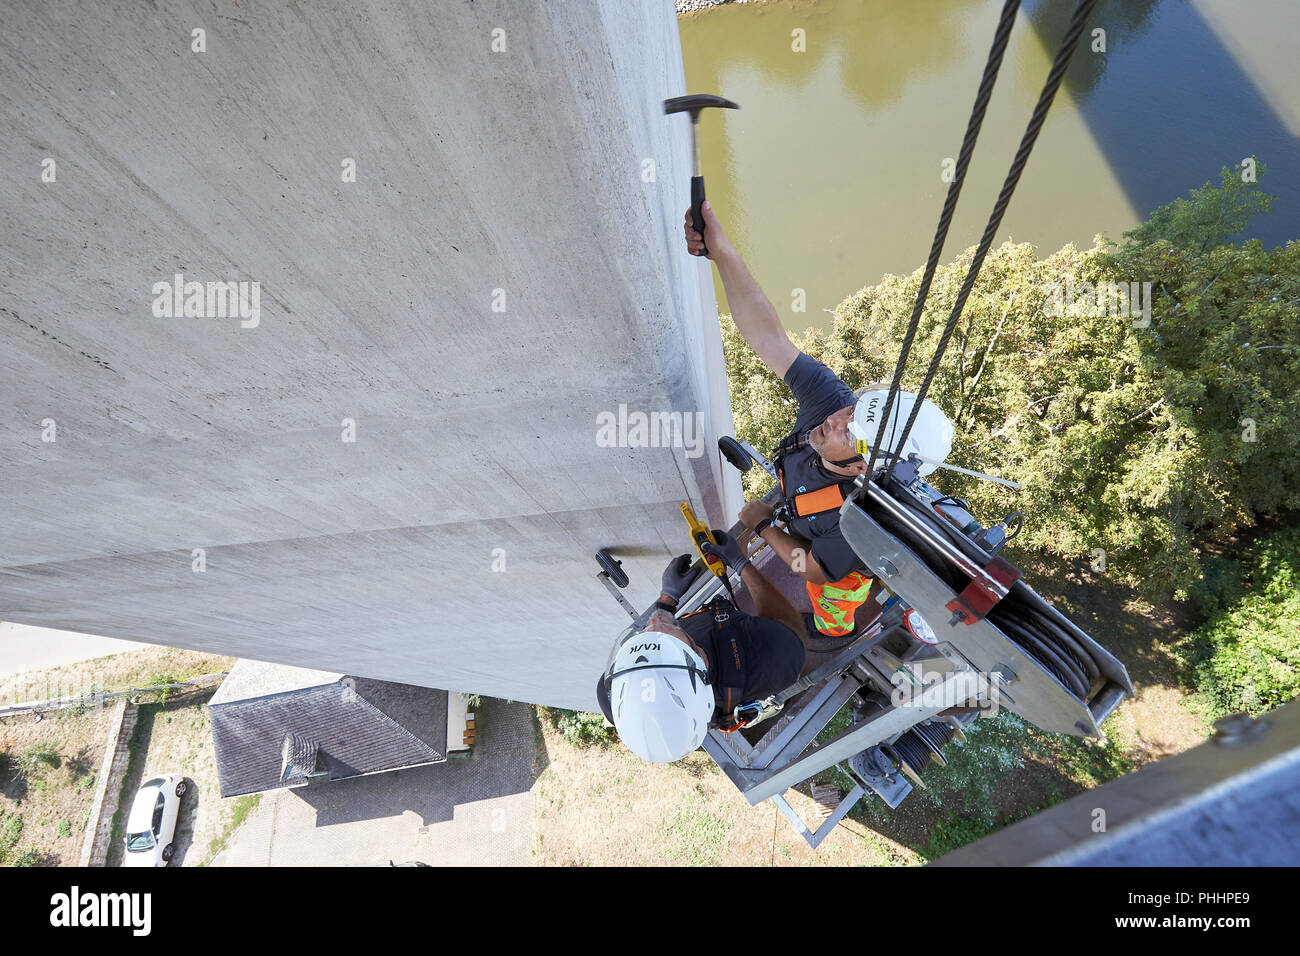 Lahnstein, Germany. 22nd Aug, 2018. 22.08.2018, Rhineland-Palatinate, Lahnstein: The bridge inspectors Frank Zerwas (r) and Christian Maximini check with a hammer the concrete surface of a pillar of the Lahn Valley Bridge on the B 42. Many German bridges date from the sixties and seventies, many are in need of rehabilitation today. (to dpa ''Bridge woodpeckers' hammer high up - regular bridge inspection' from 02.09.2018) Credit: Thomas Frey/dpa/Alamy Live News - Stock Image